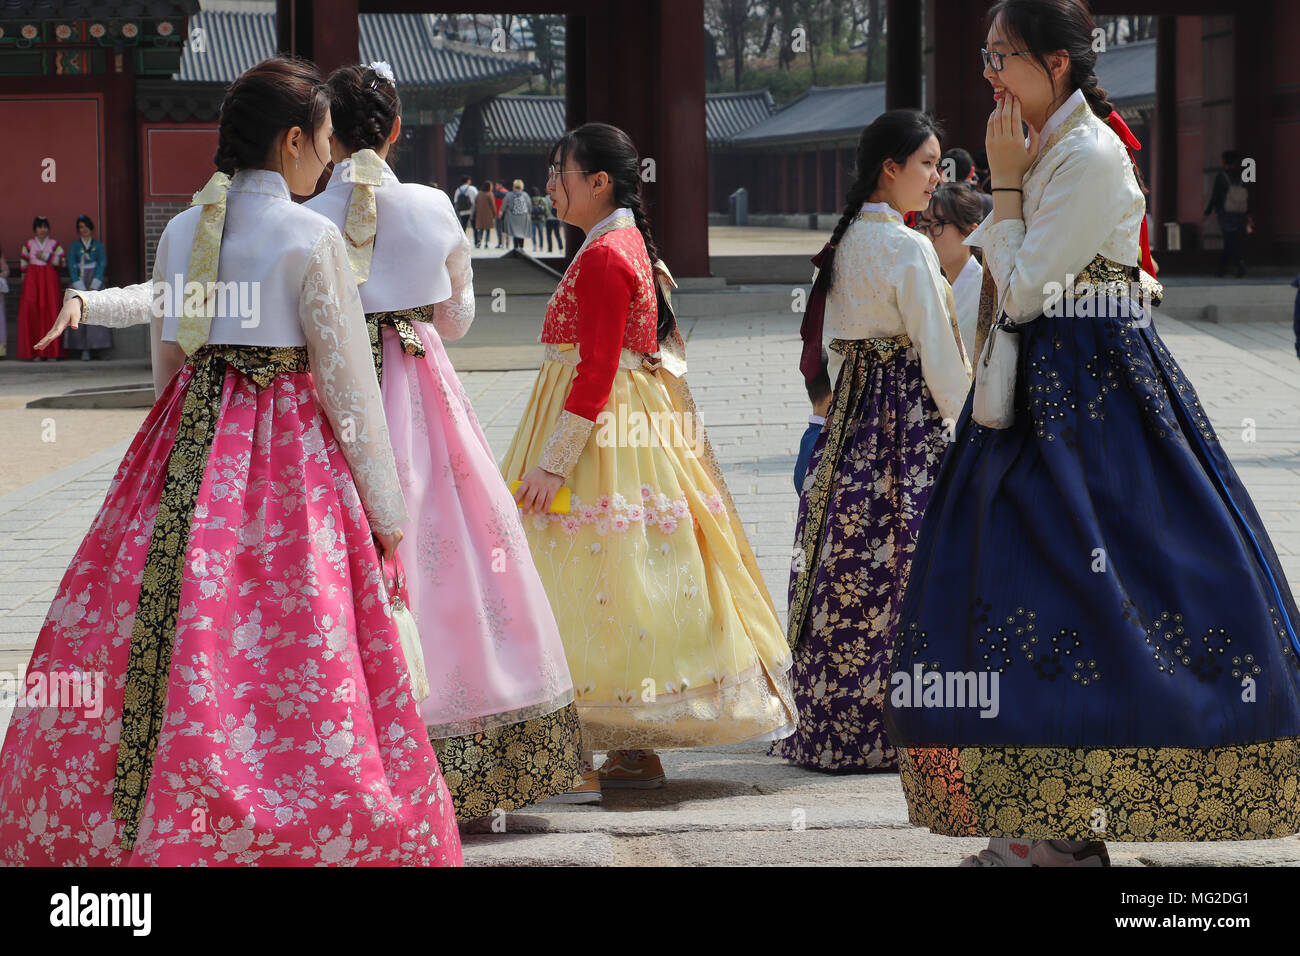 Group of several Korean teenage girls dressed in colorful traditional full-skirted hanboks visit the Changdeokgung Palace in Seoul, South Korea. - Stock Image